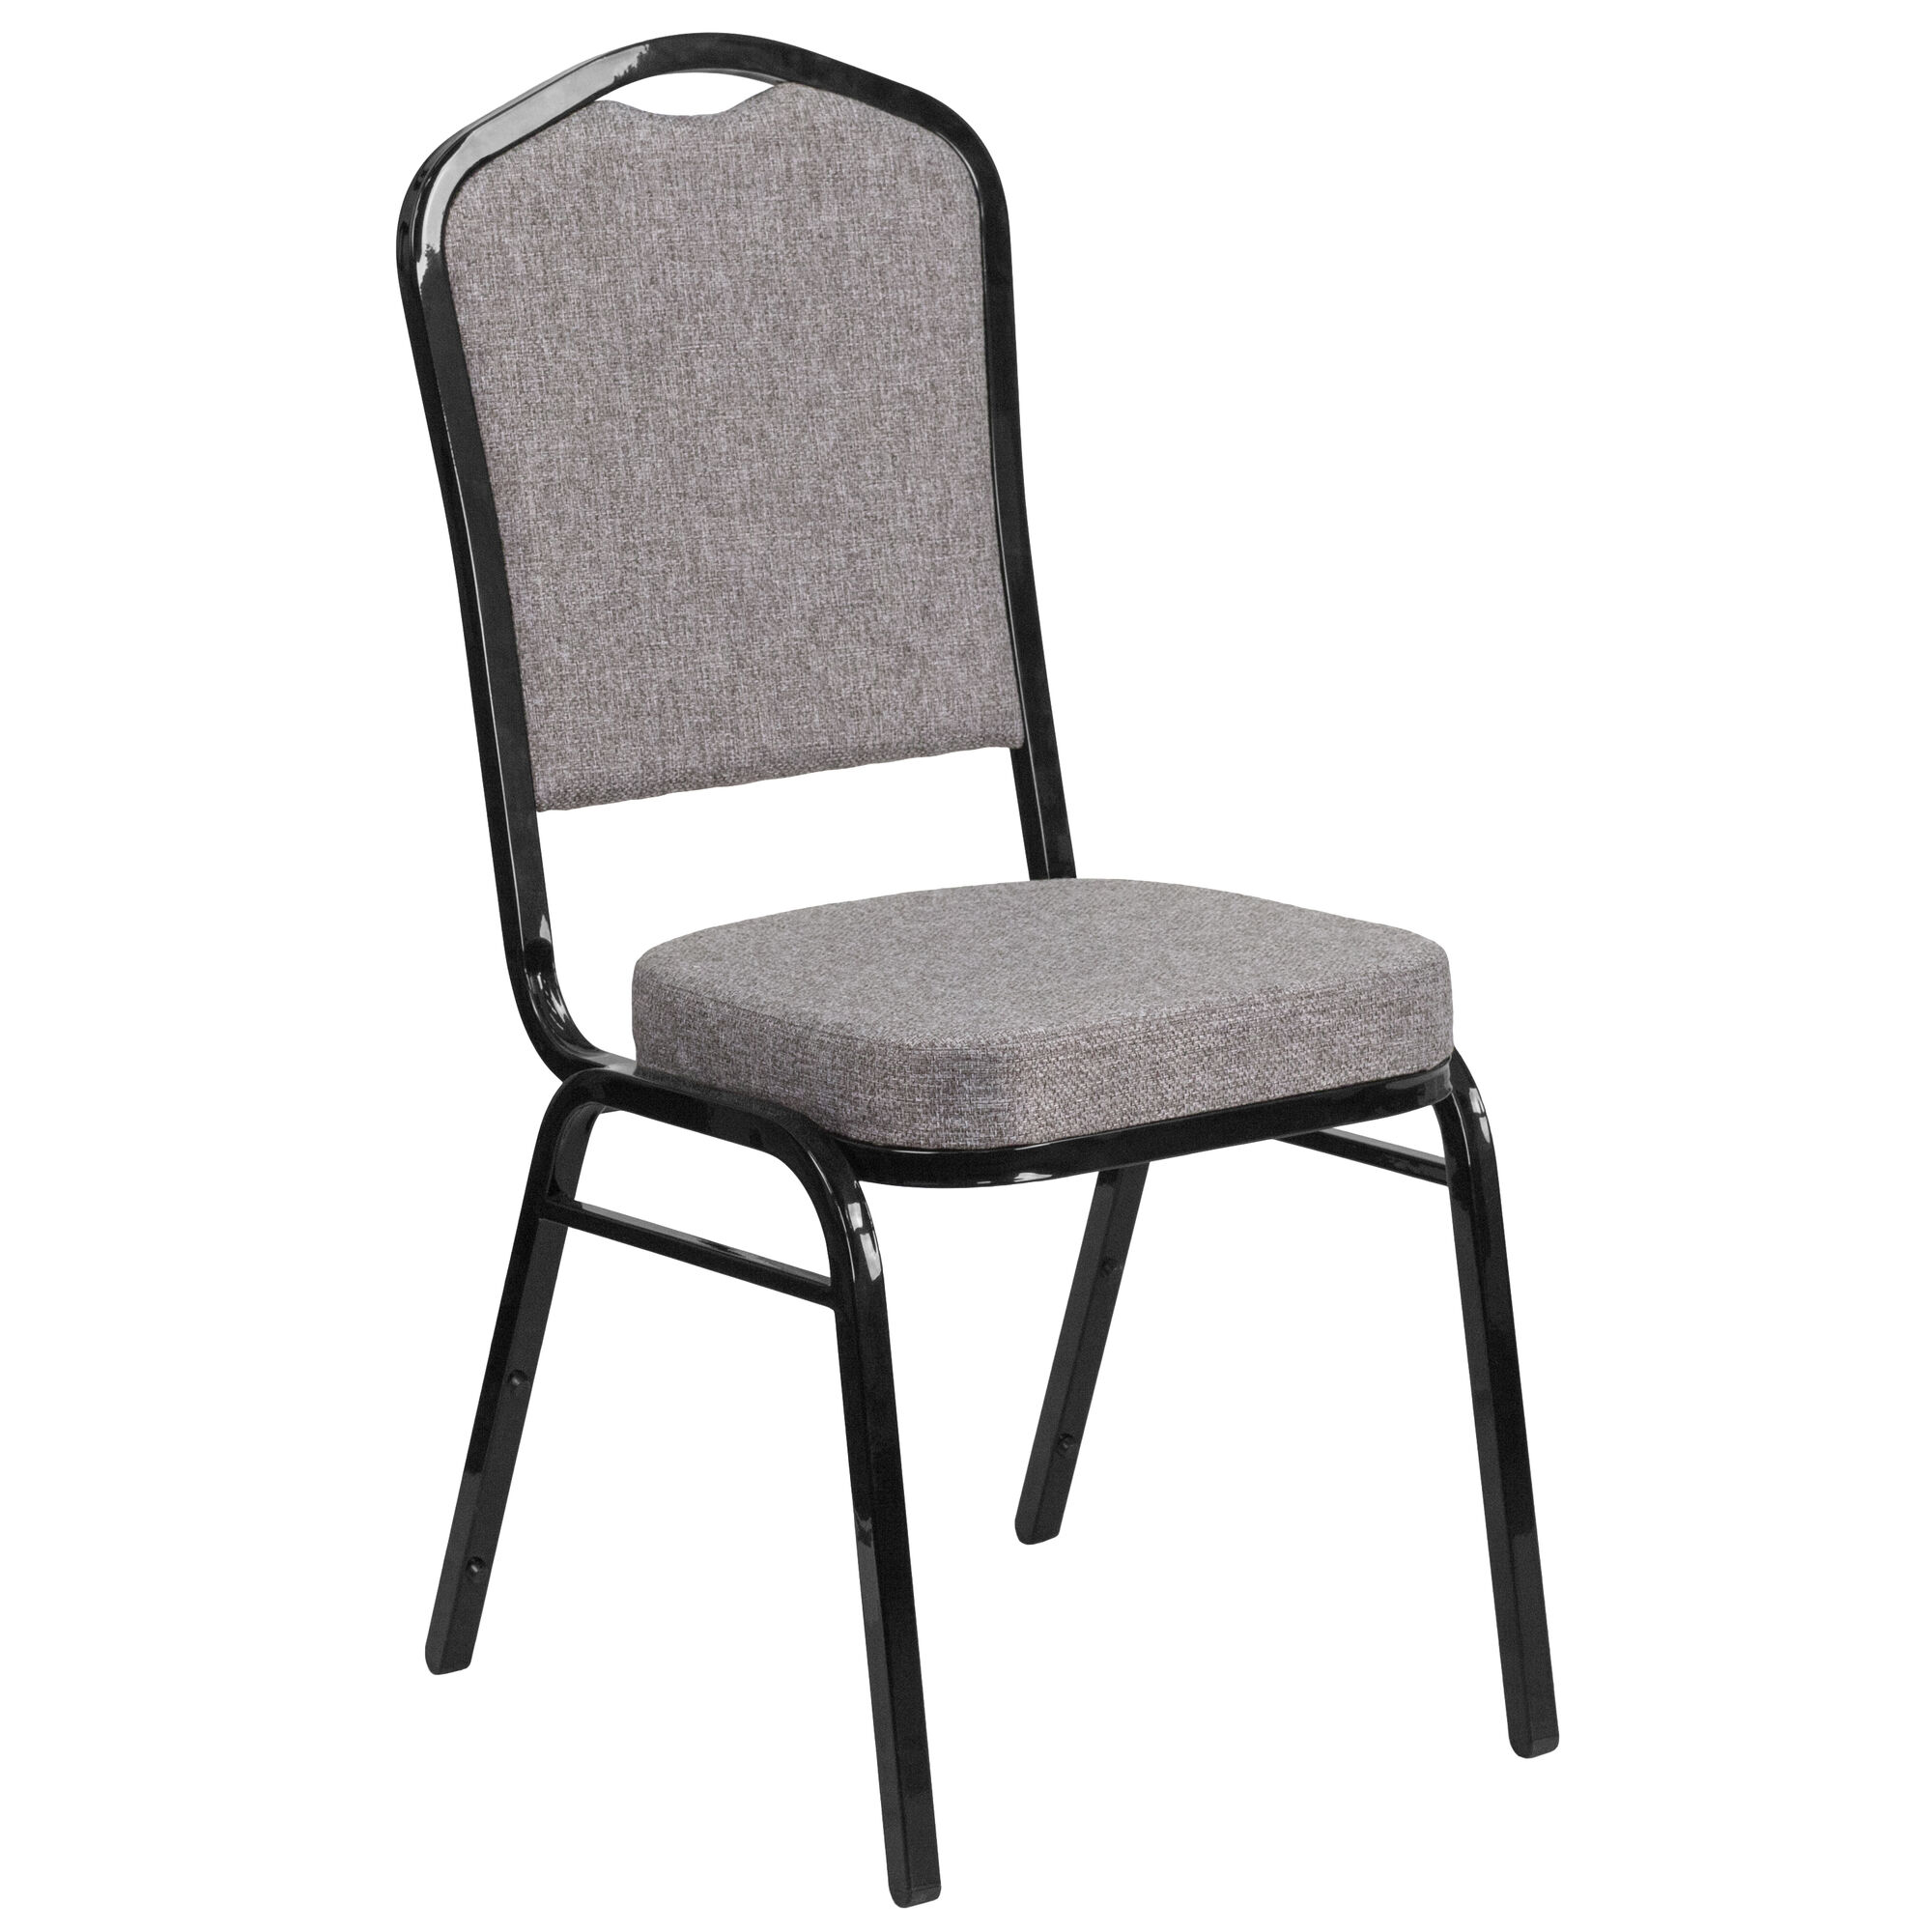 Gray Fabric Banquet Chair Fd C01 B 5 Gg Stackchairs4less Com